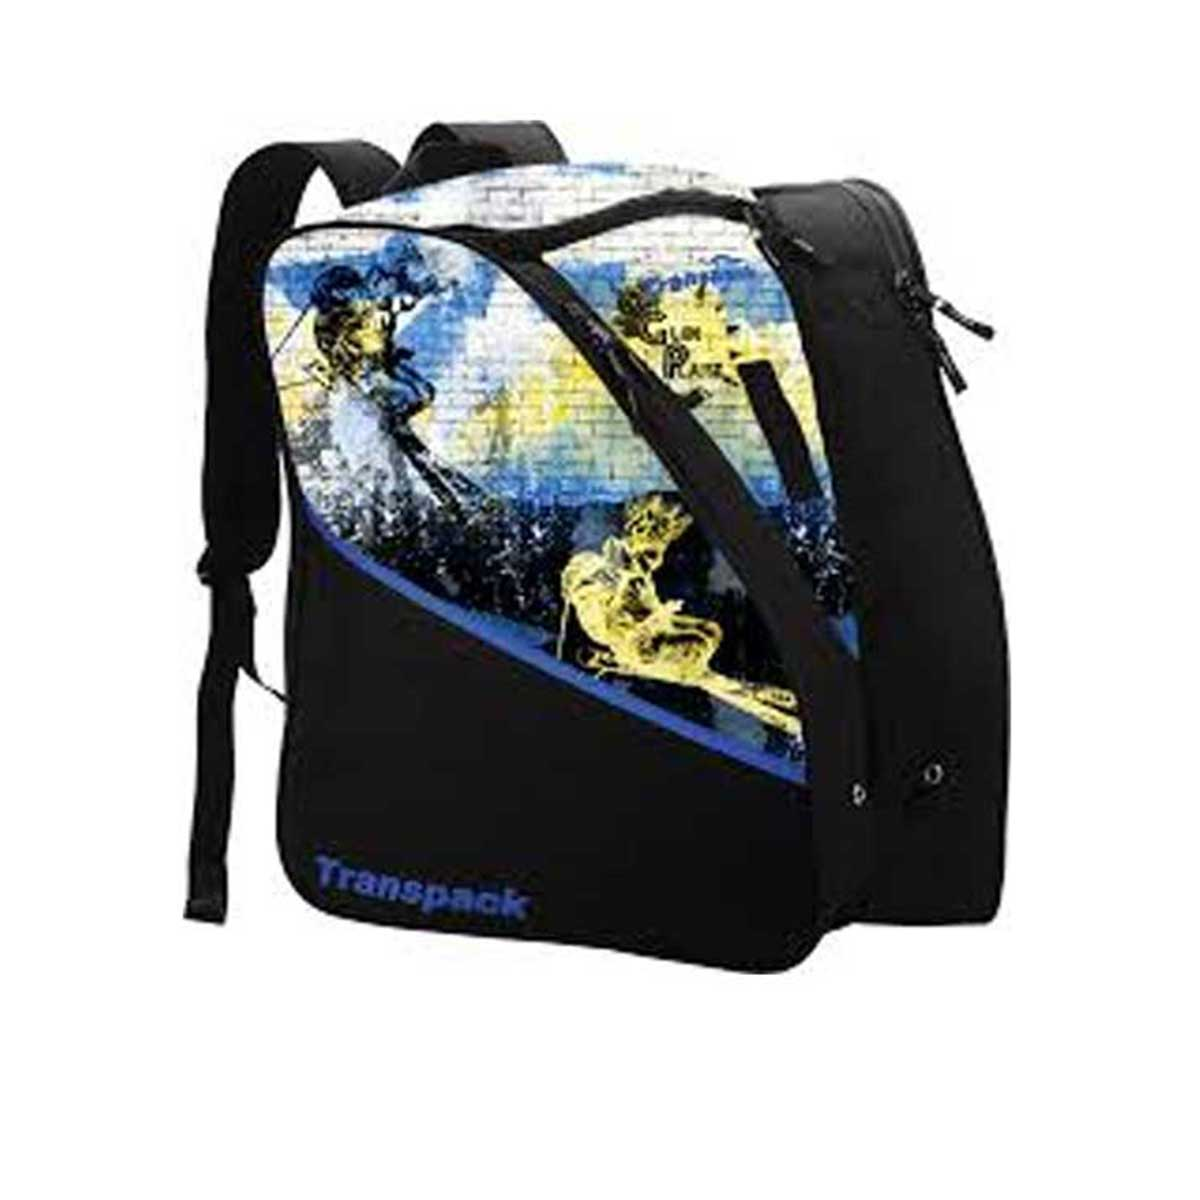 Transpack Kids' Edge Jr. Print Boot Bag in Glen Plake and Blue Yellow